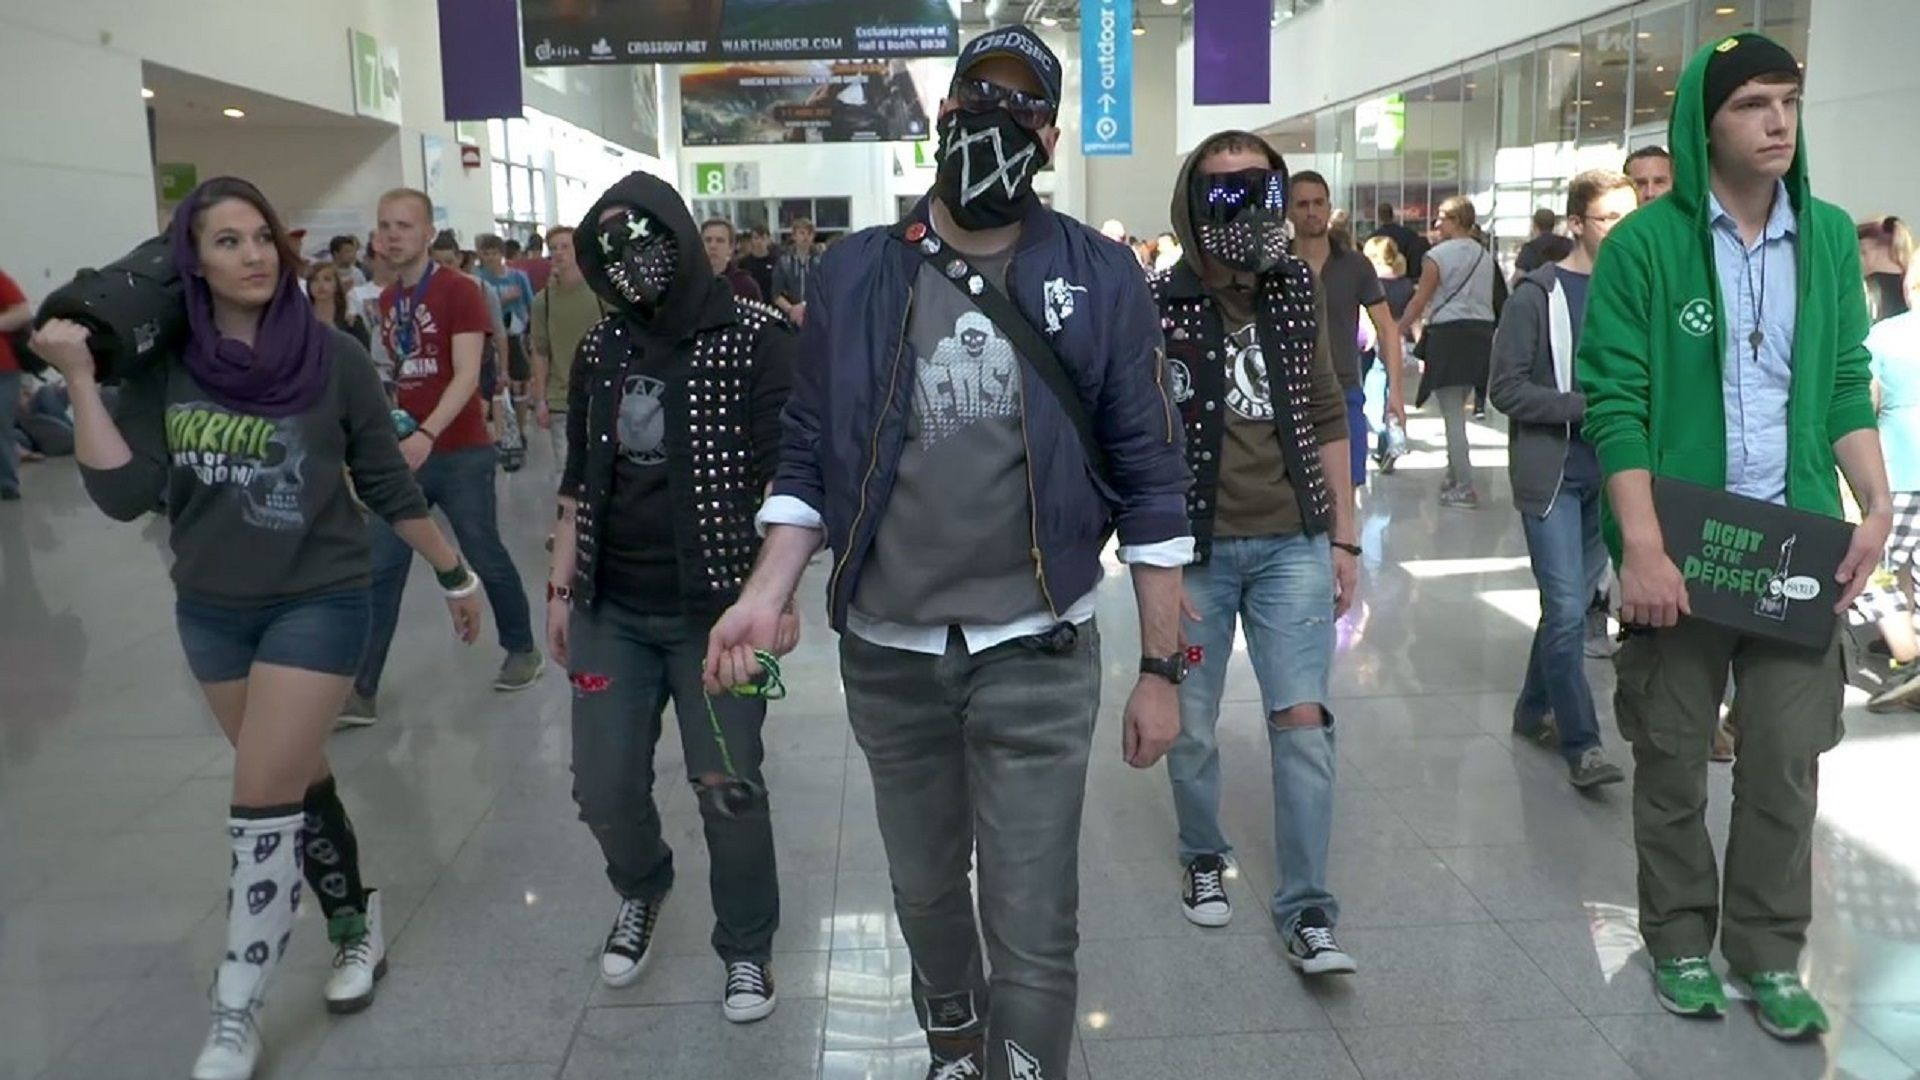 Awesome Watch Dogs 2 Cosplay | Cosplay | Pinterest ...